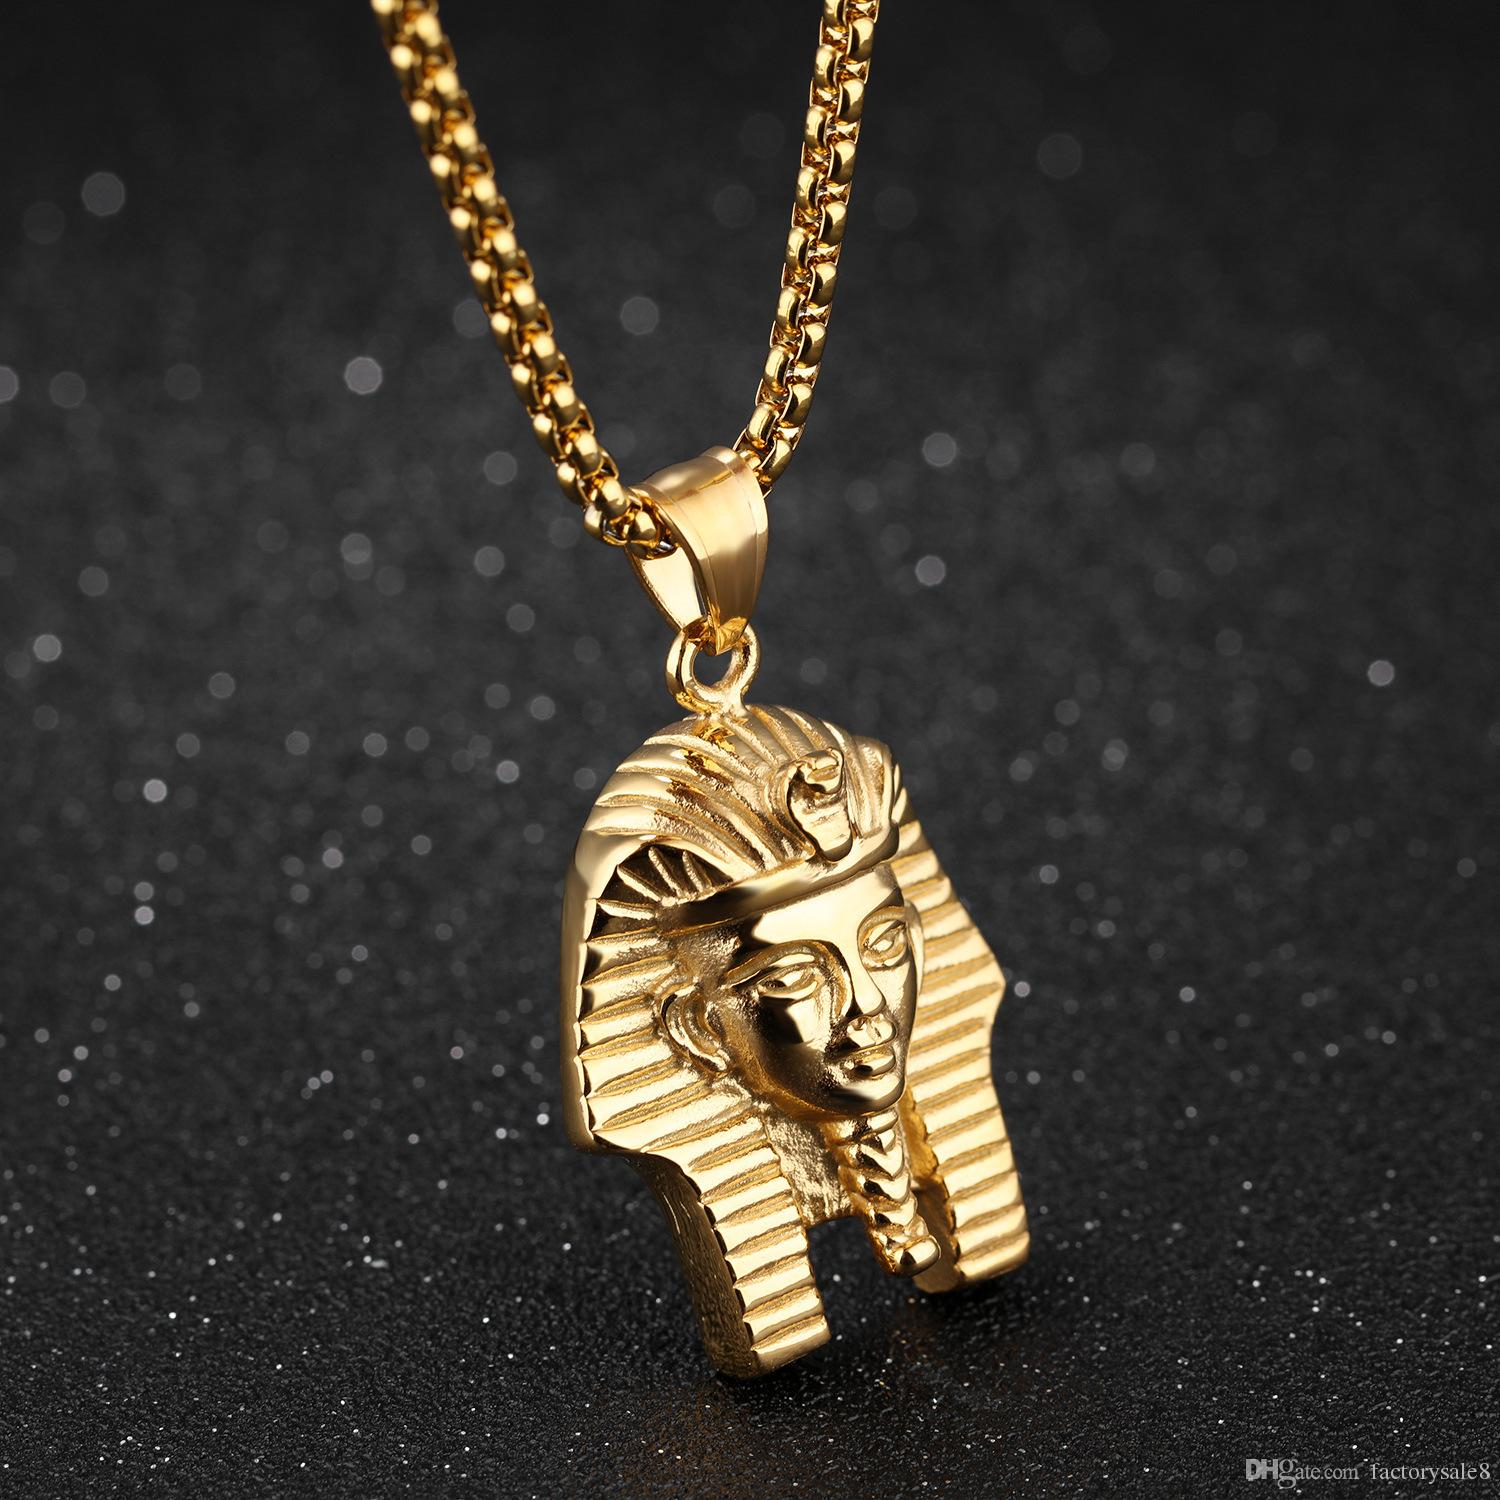 Vintage Retro Men Necklaces Egyptian Pharaoh Pendants Chain Necklace Masquerade Party Stainless Steel Jewelry Birthday Gift for Boyfriend